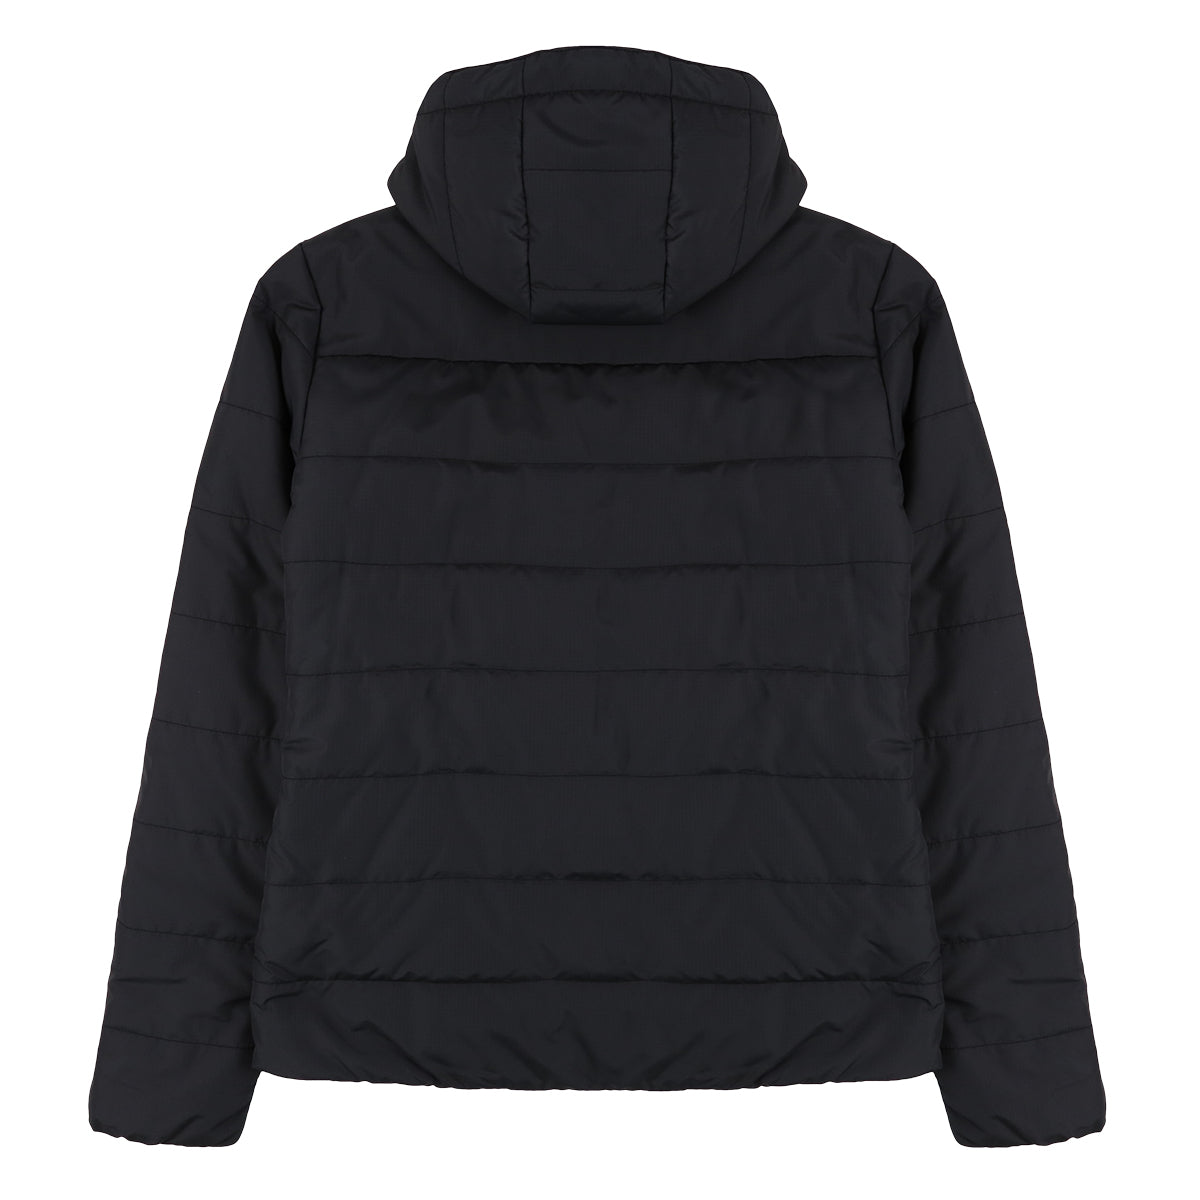 Jackpine Insulated Jacket - Black image 7